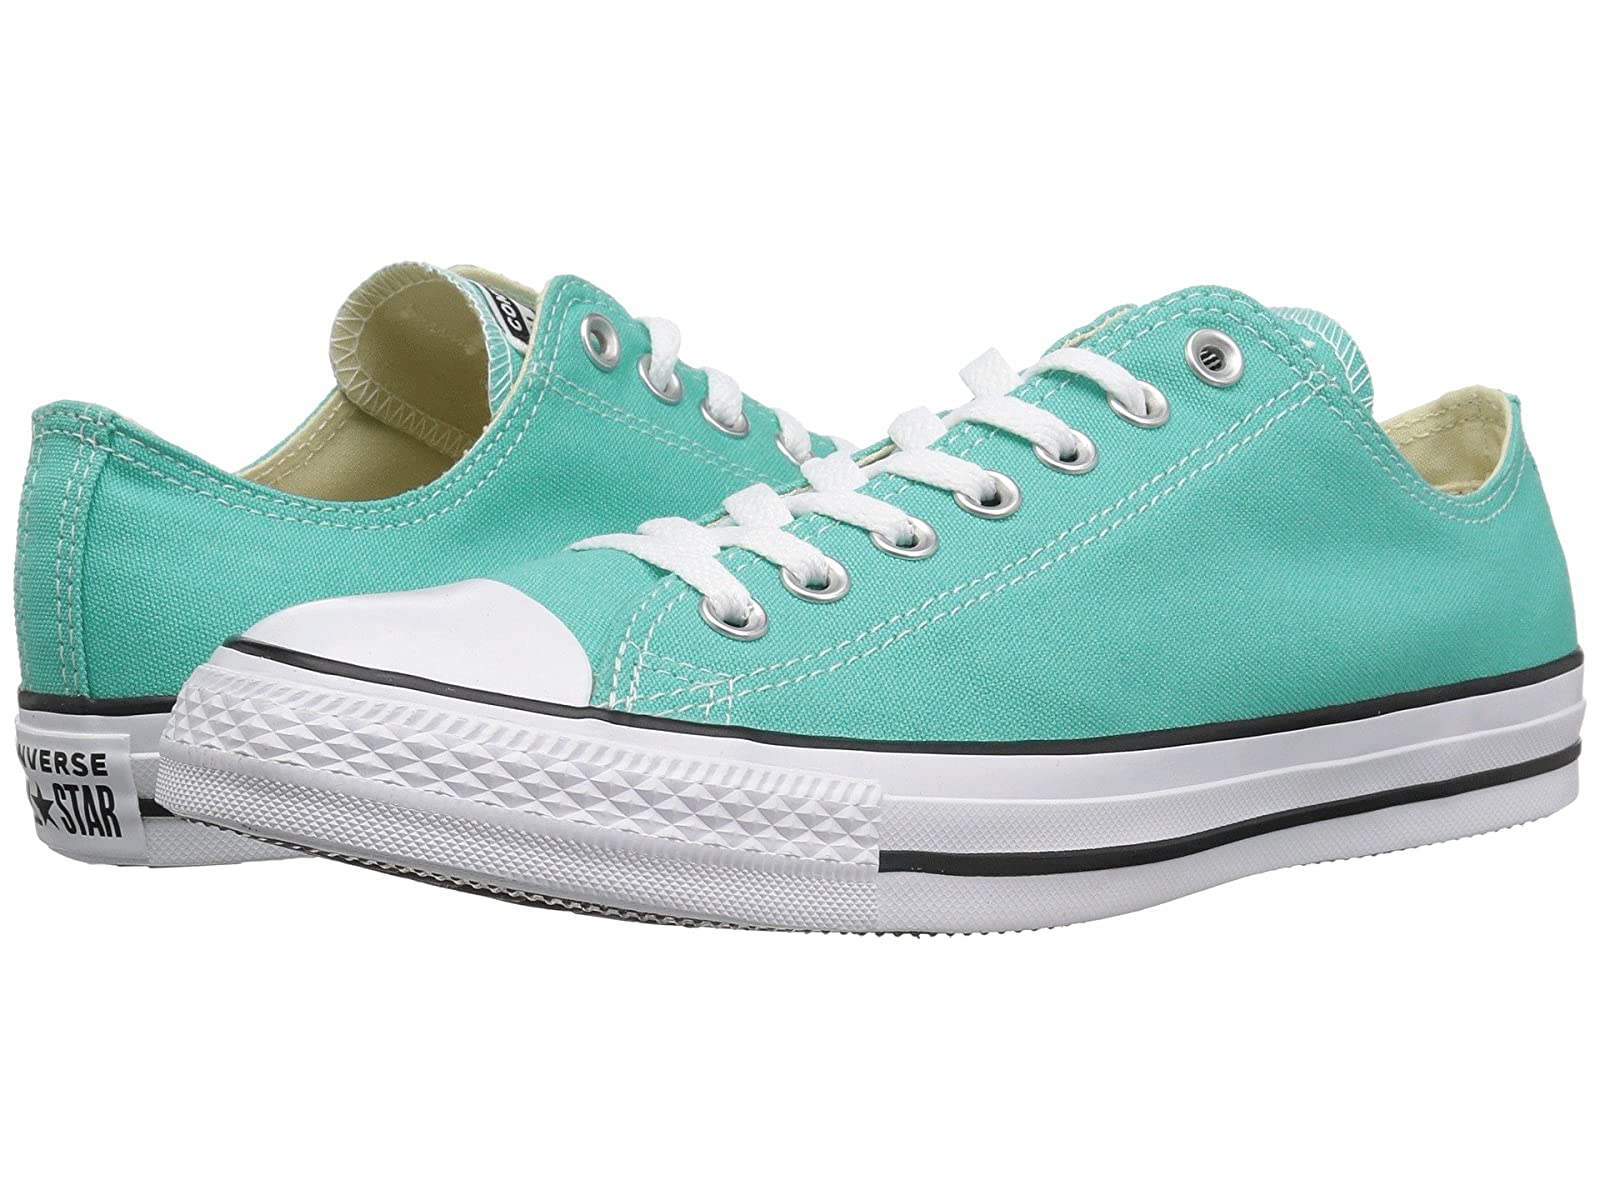 Converse Chuck Taylor All Star Seasonal OxAtmospheric grades have affordable shoes